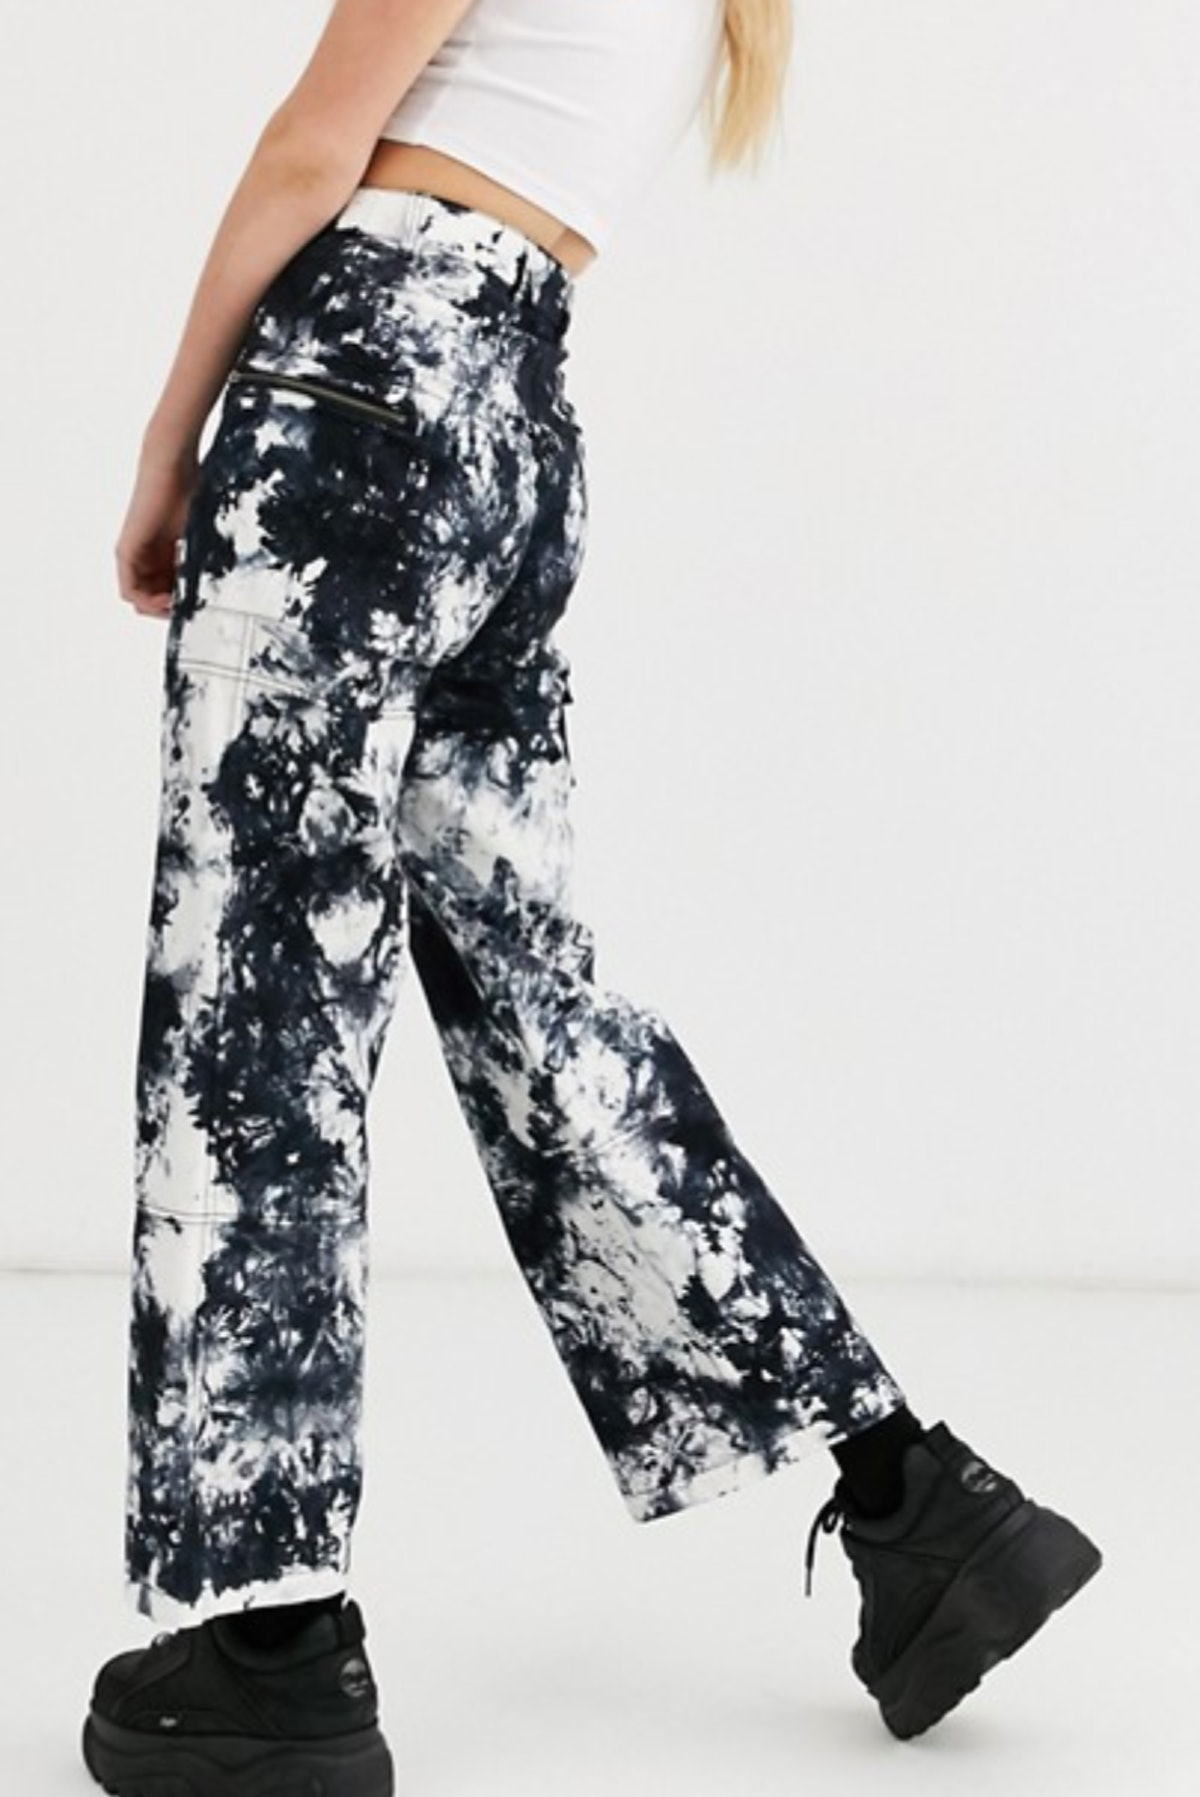 COLLUSION tie dye cargo pants with pocket